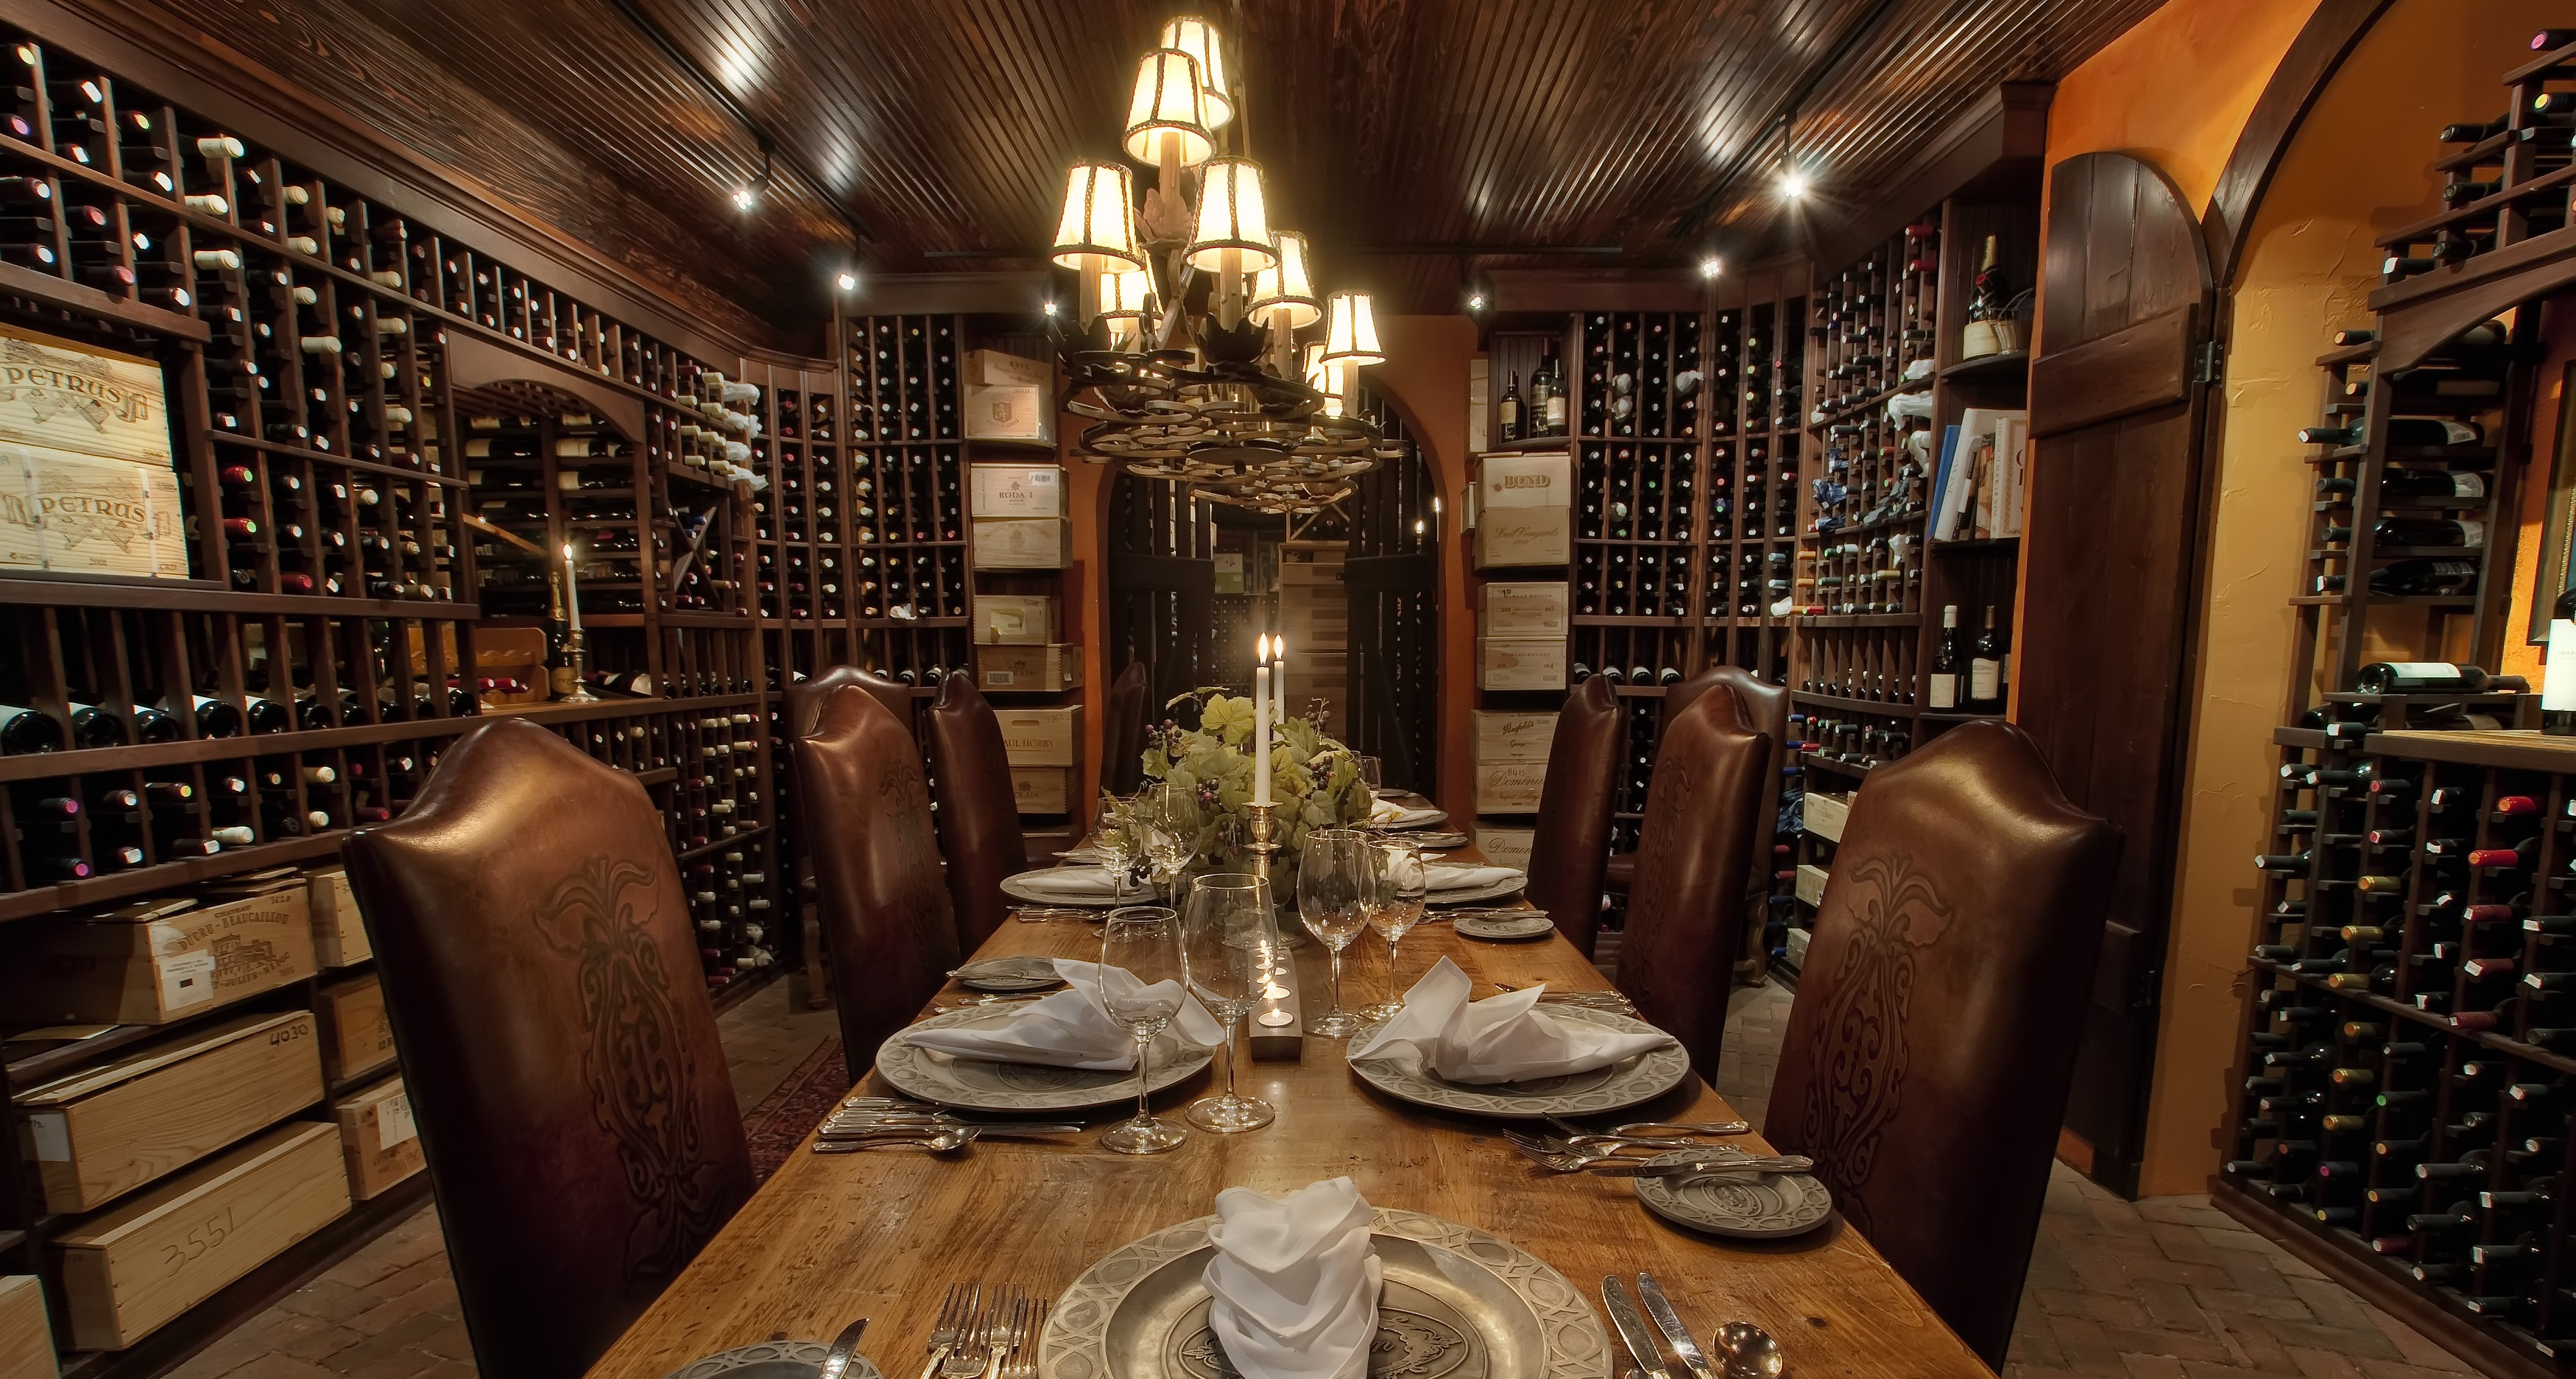 Indulge in a bottle of wine from the award-winning wine cellar containing over 17,000 bottles.